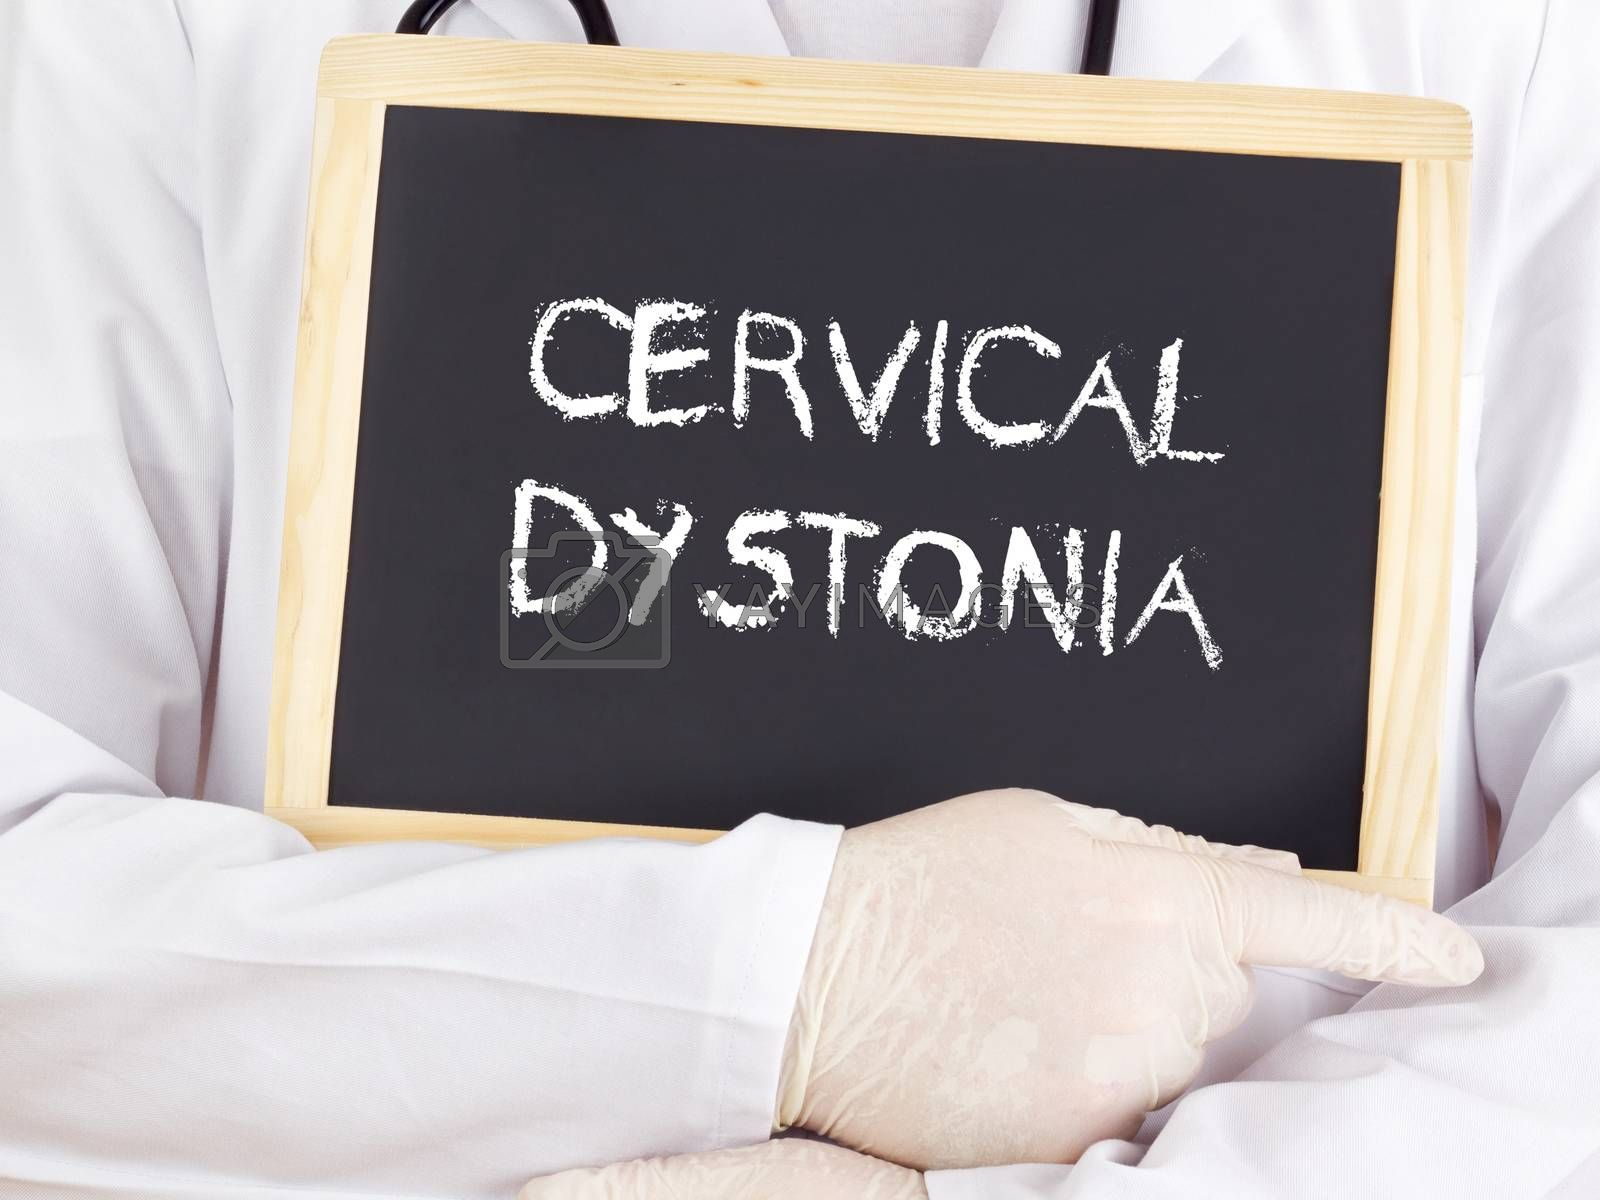 Doctor shows information on blackboard: Cervical dystonia